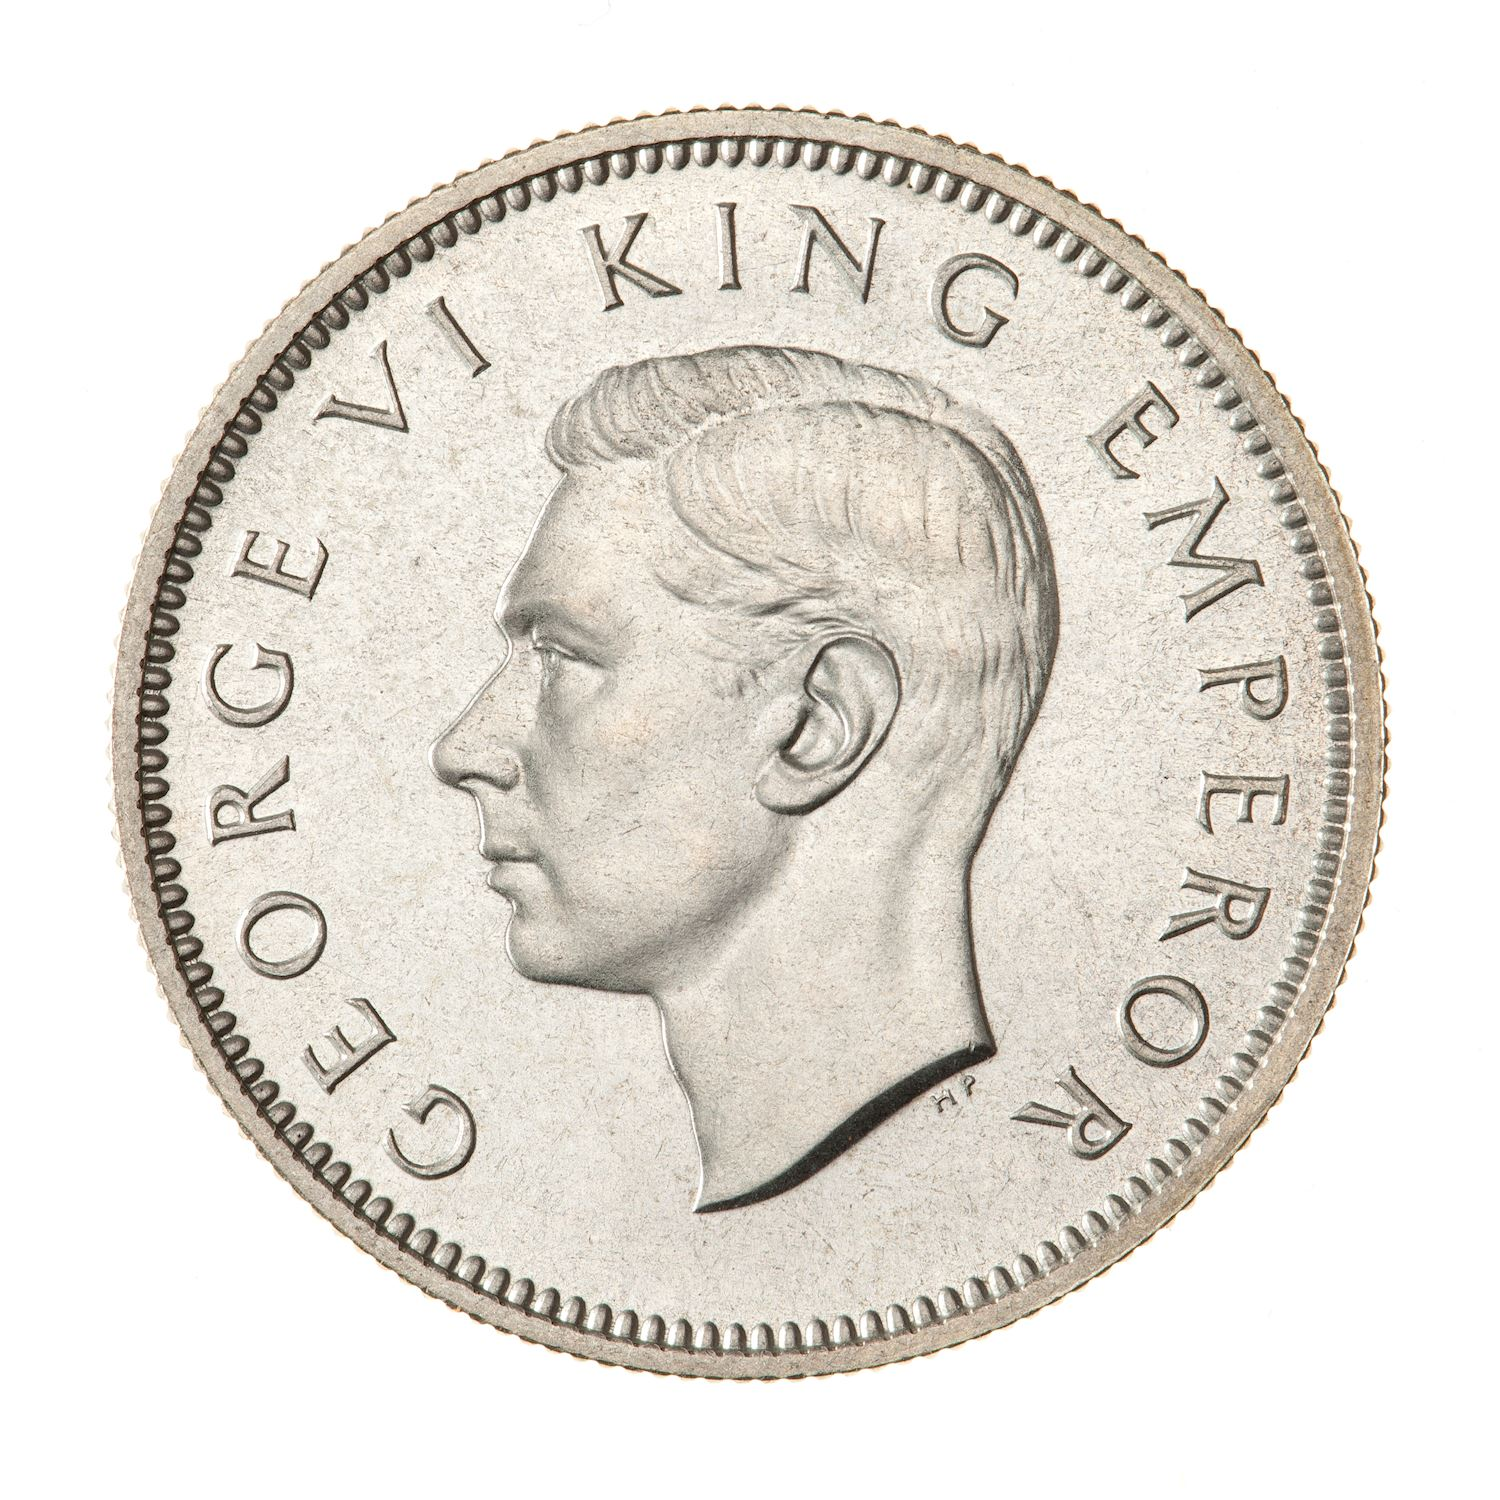 Shilling: Photo Proof Coin - 1 Shilling, New Zealand, 1937